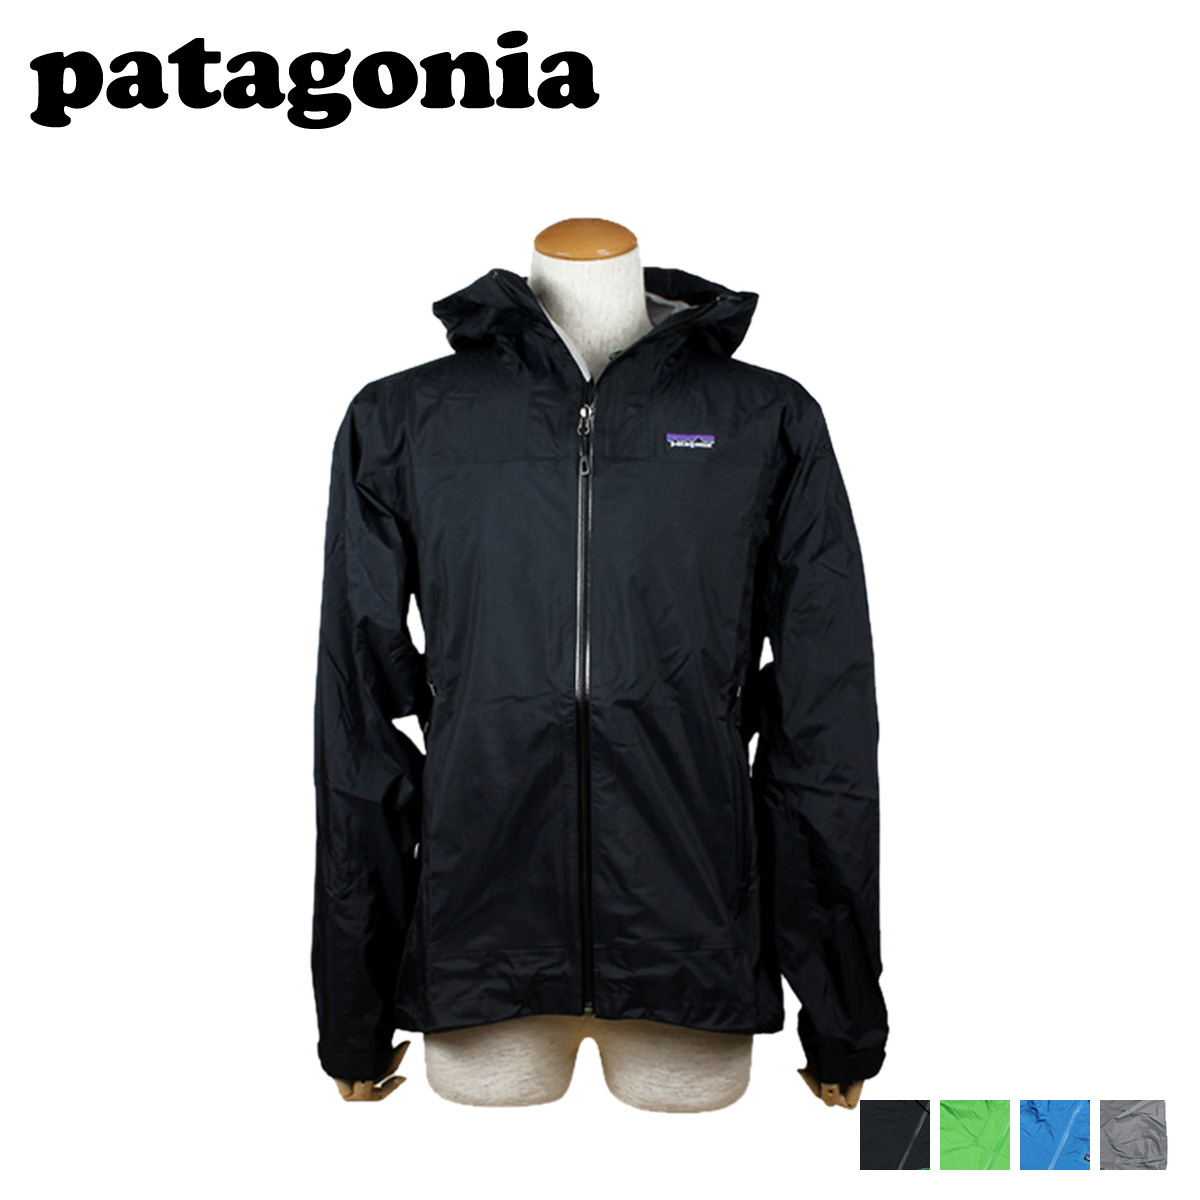 special for shoe classic fit size 7 ALLSPORTS: Patagonia patagonia rain jacket MENS RAIN SHADOW JACKET ...